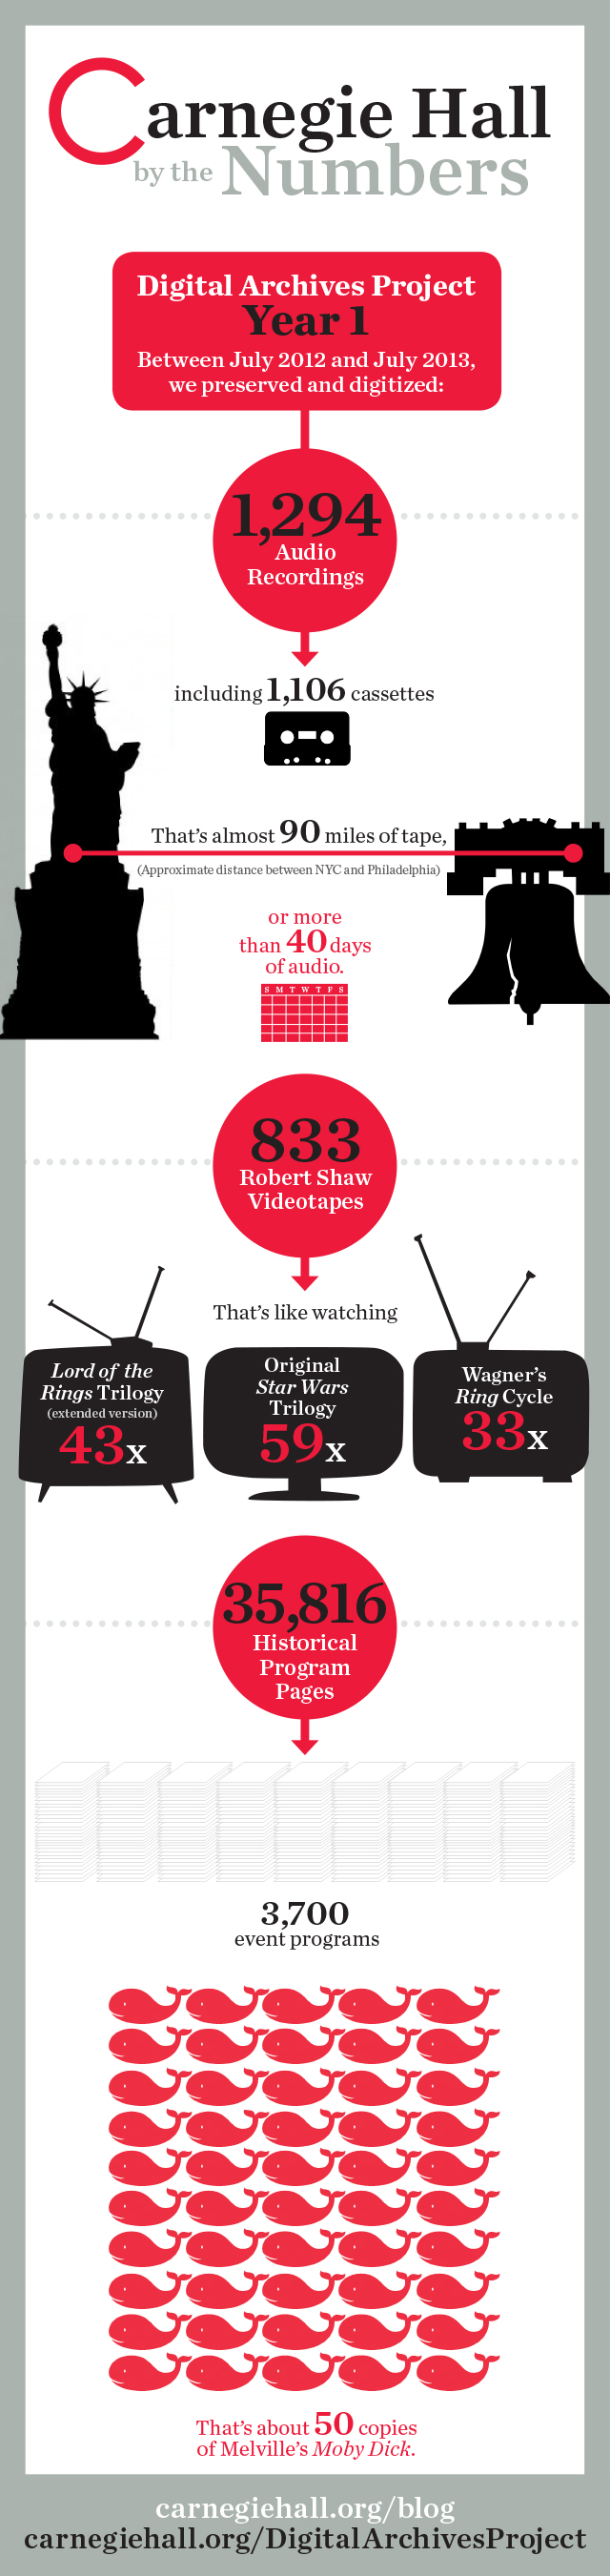 Infographic Carnegie Hall's Digital Archives Project Year 1